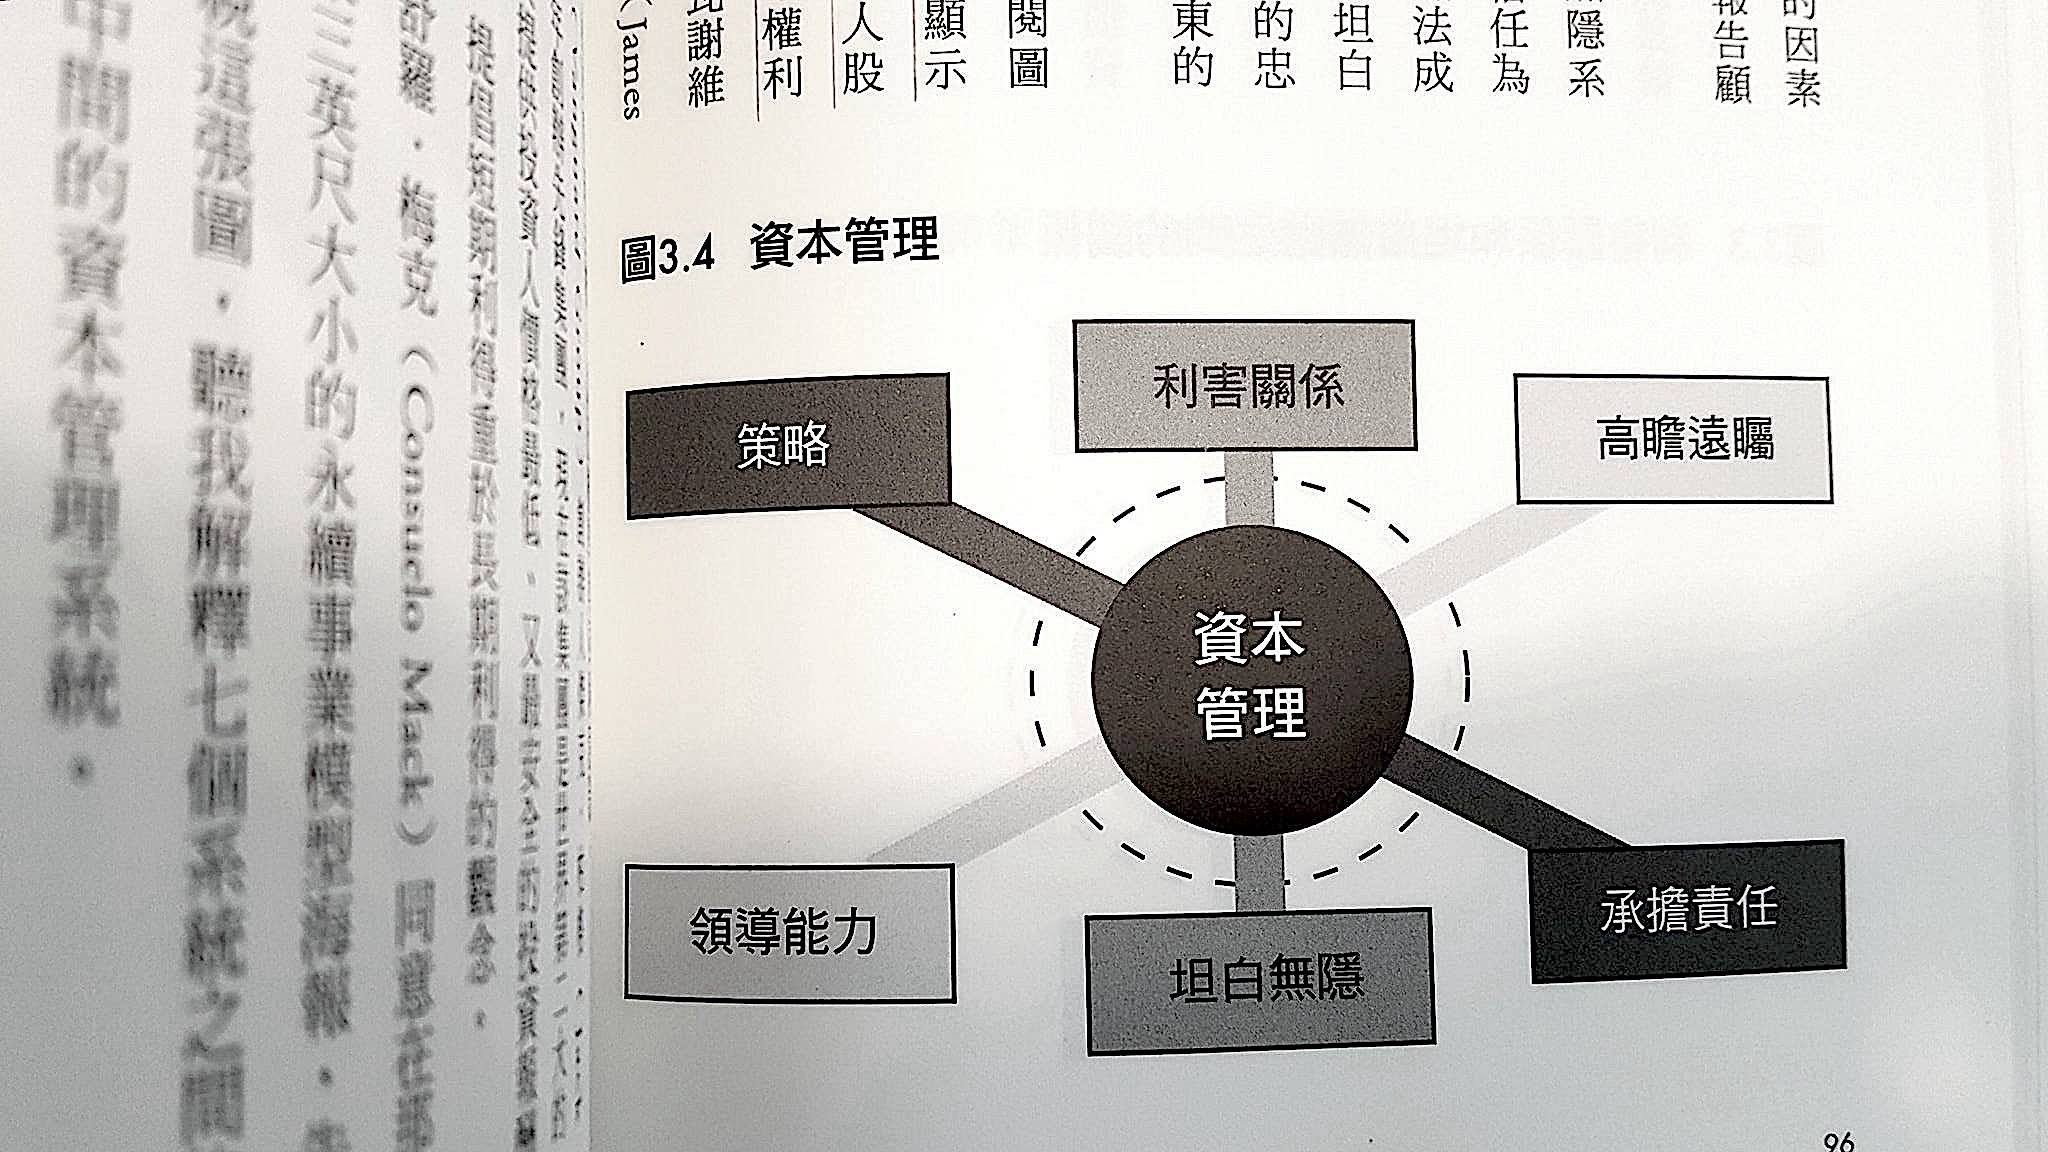 永續事業模型 (model of a sustainable business)